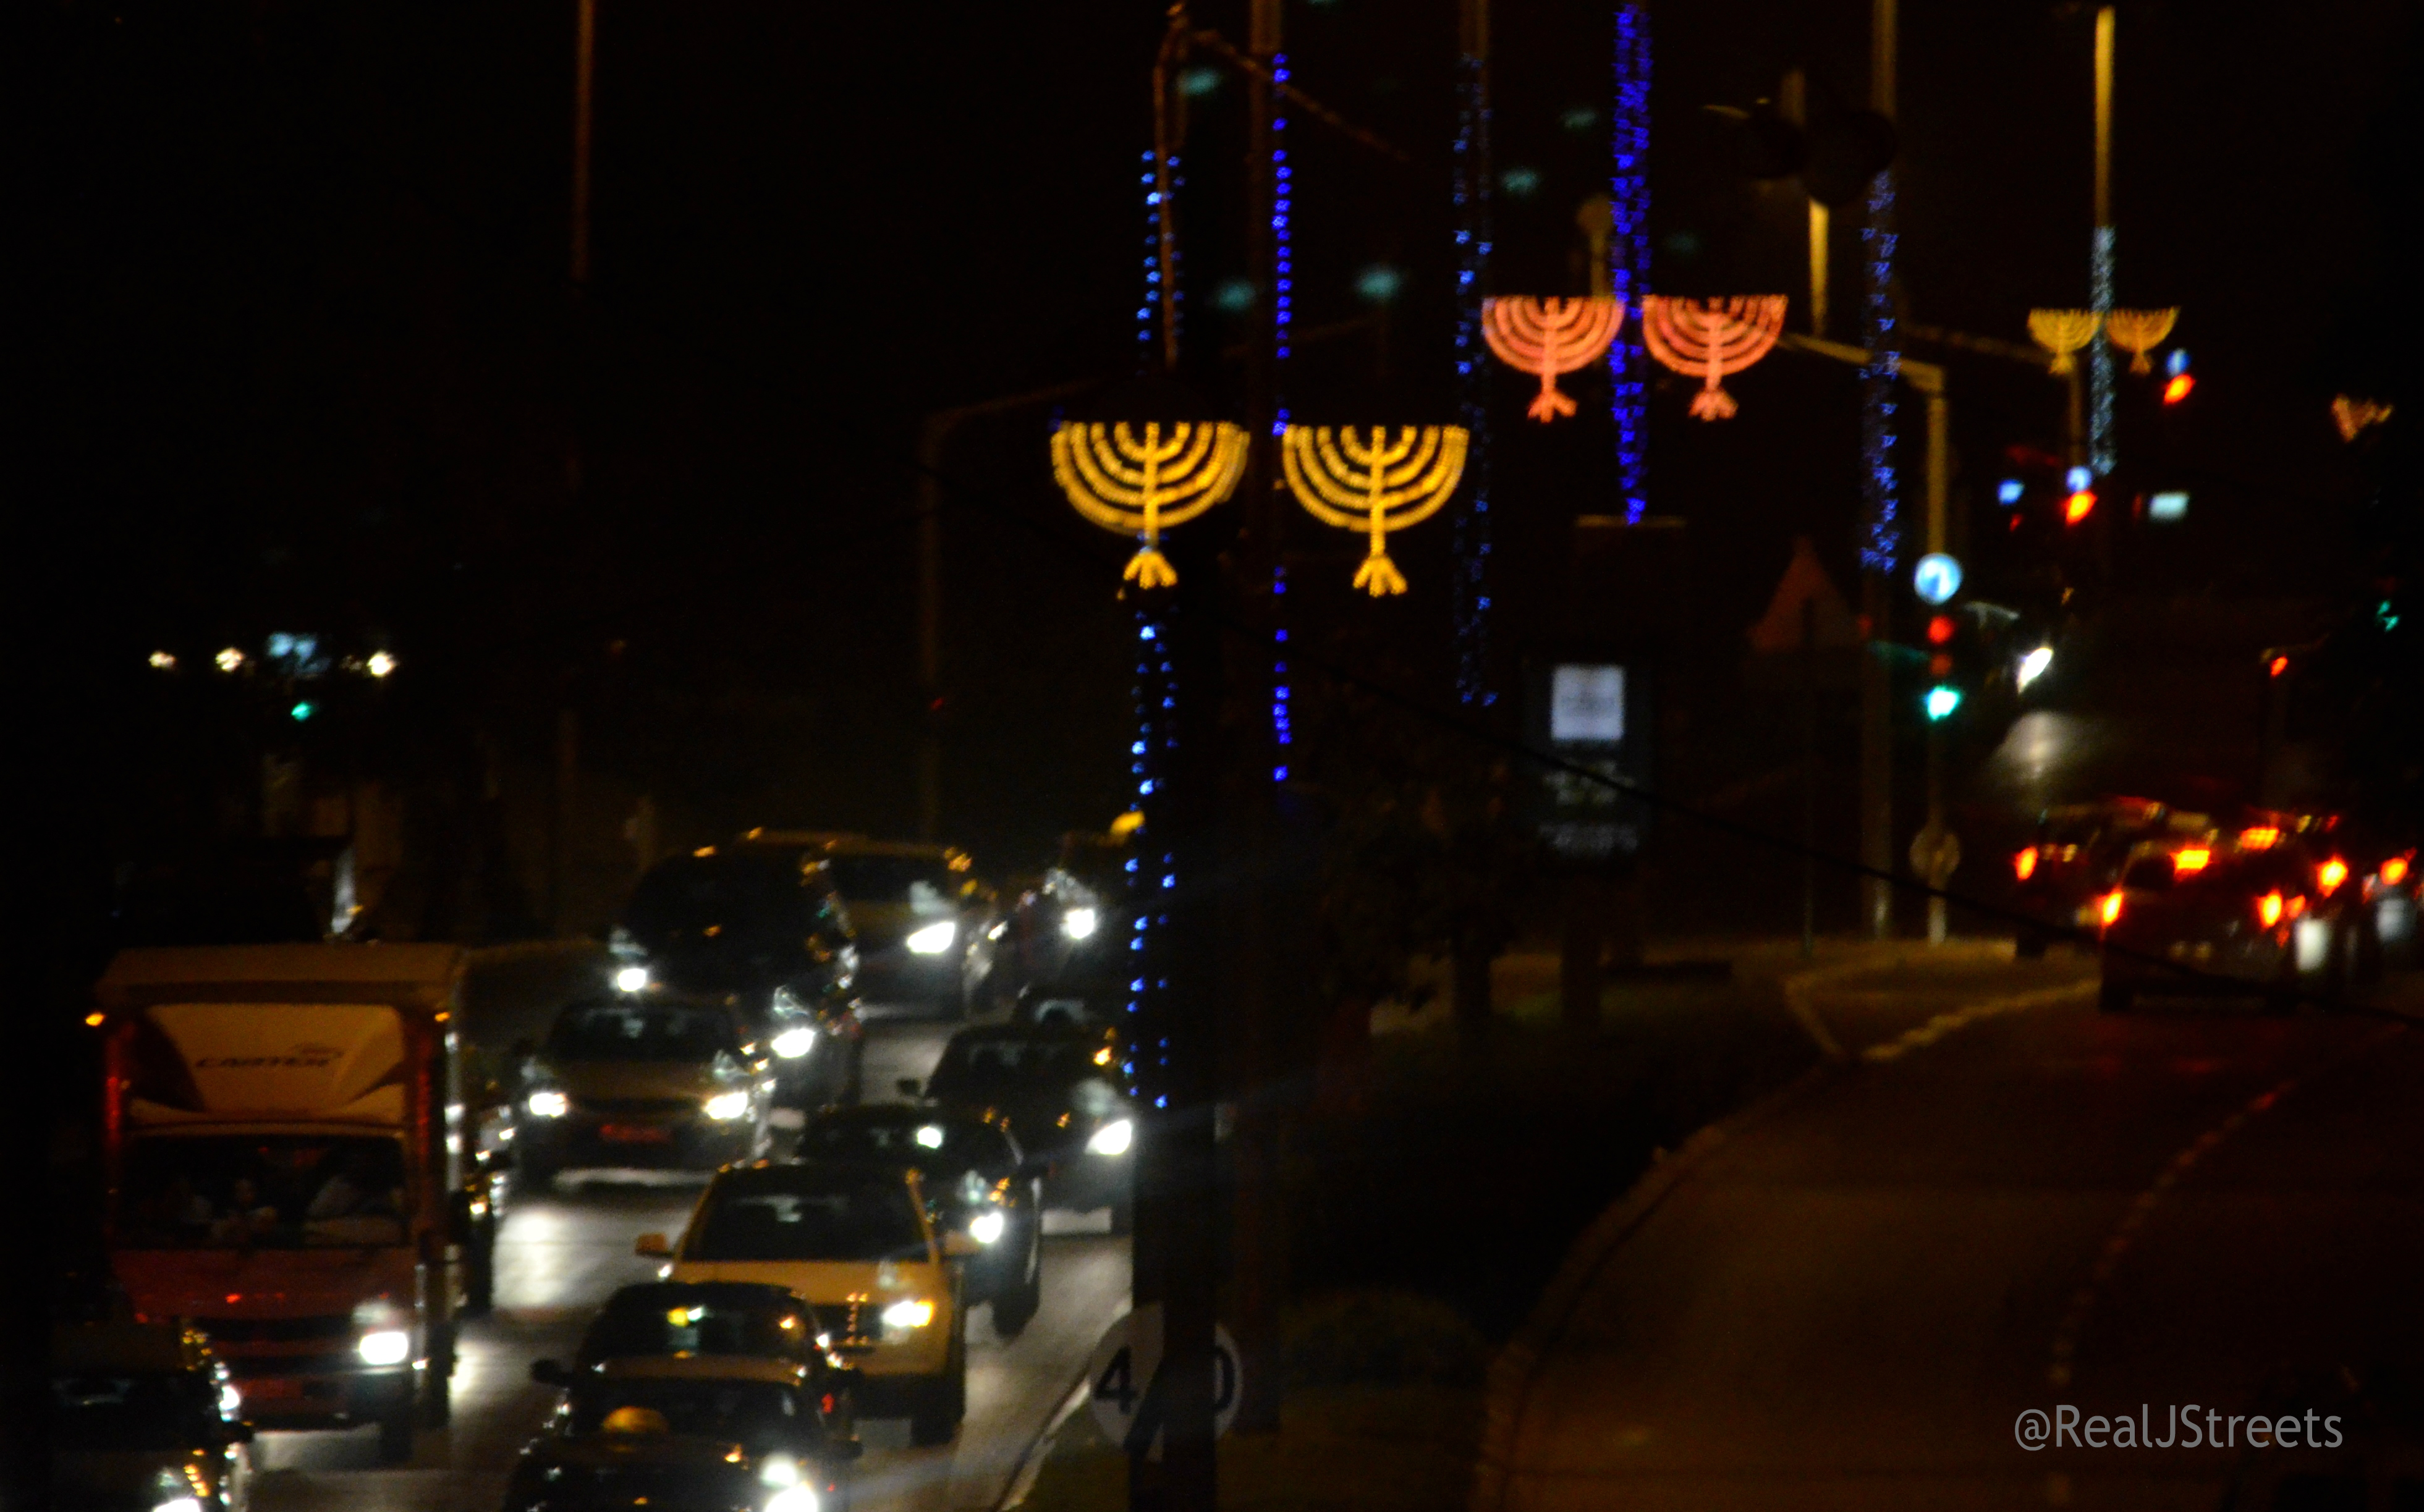 electric menorah as street decorations